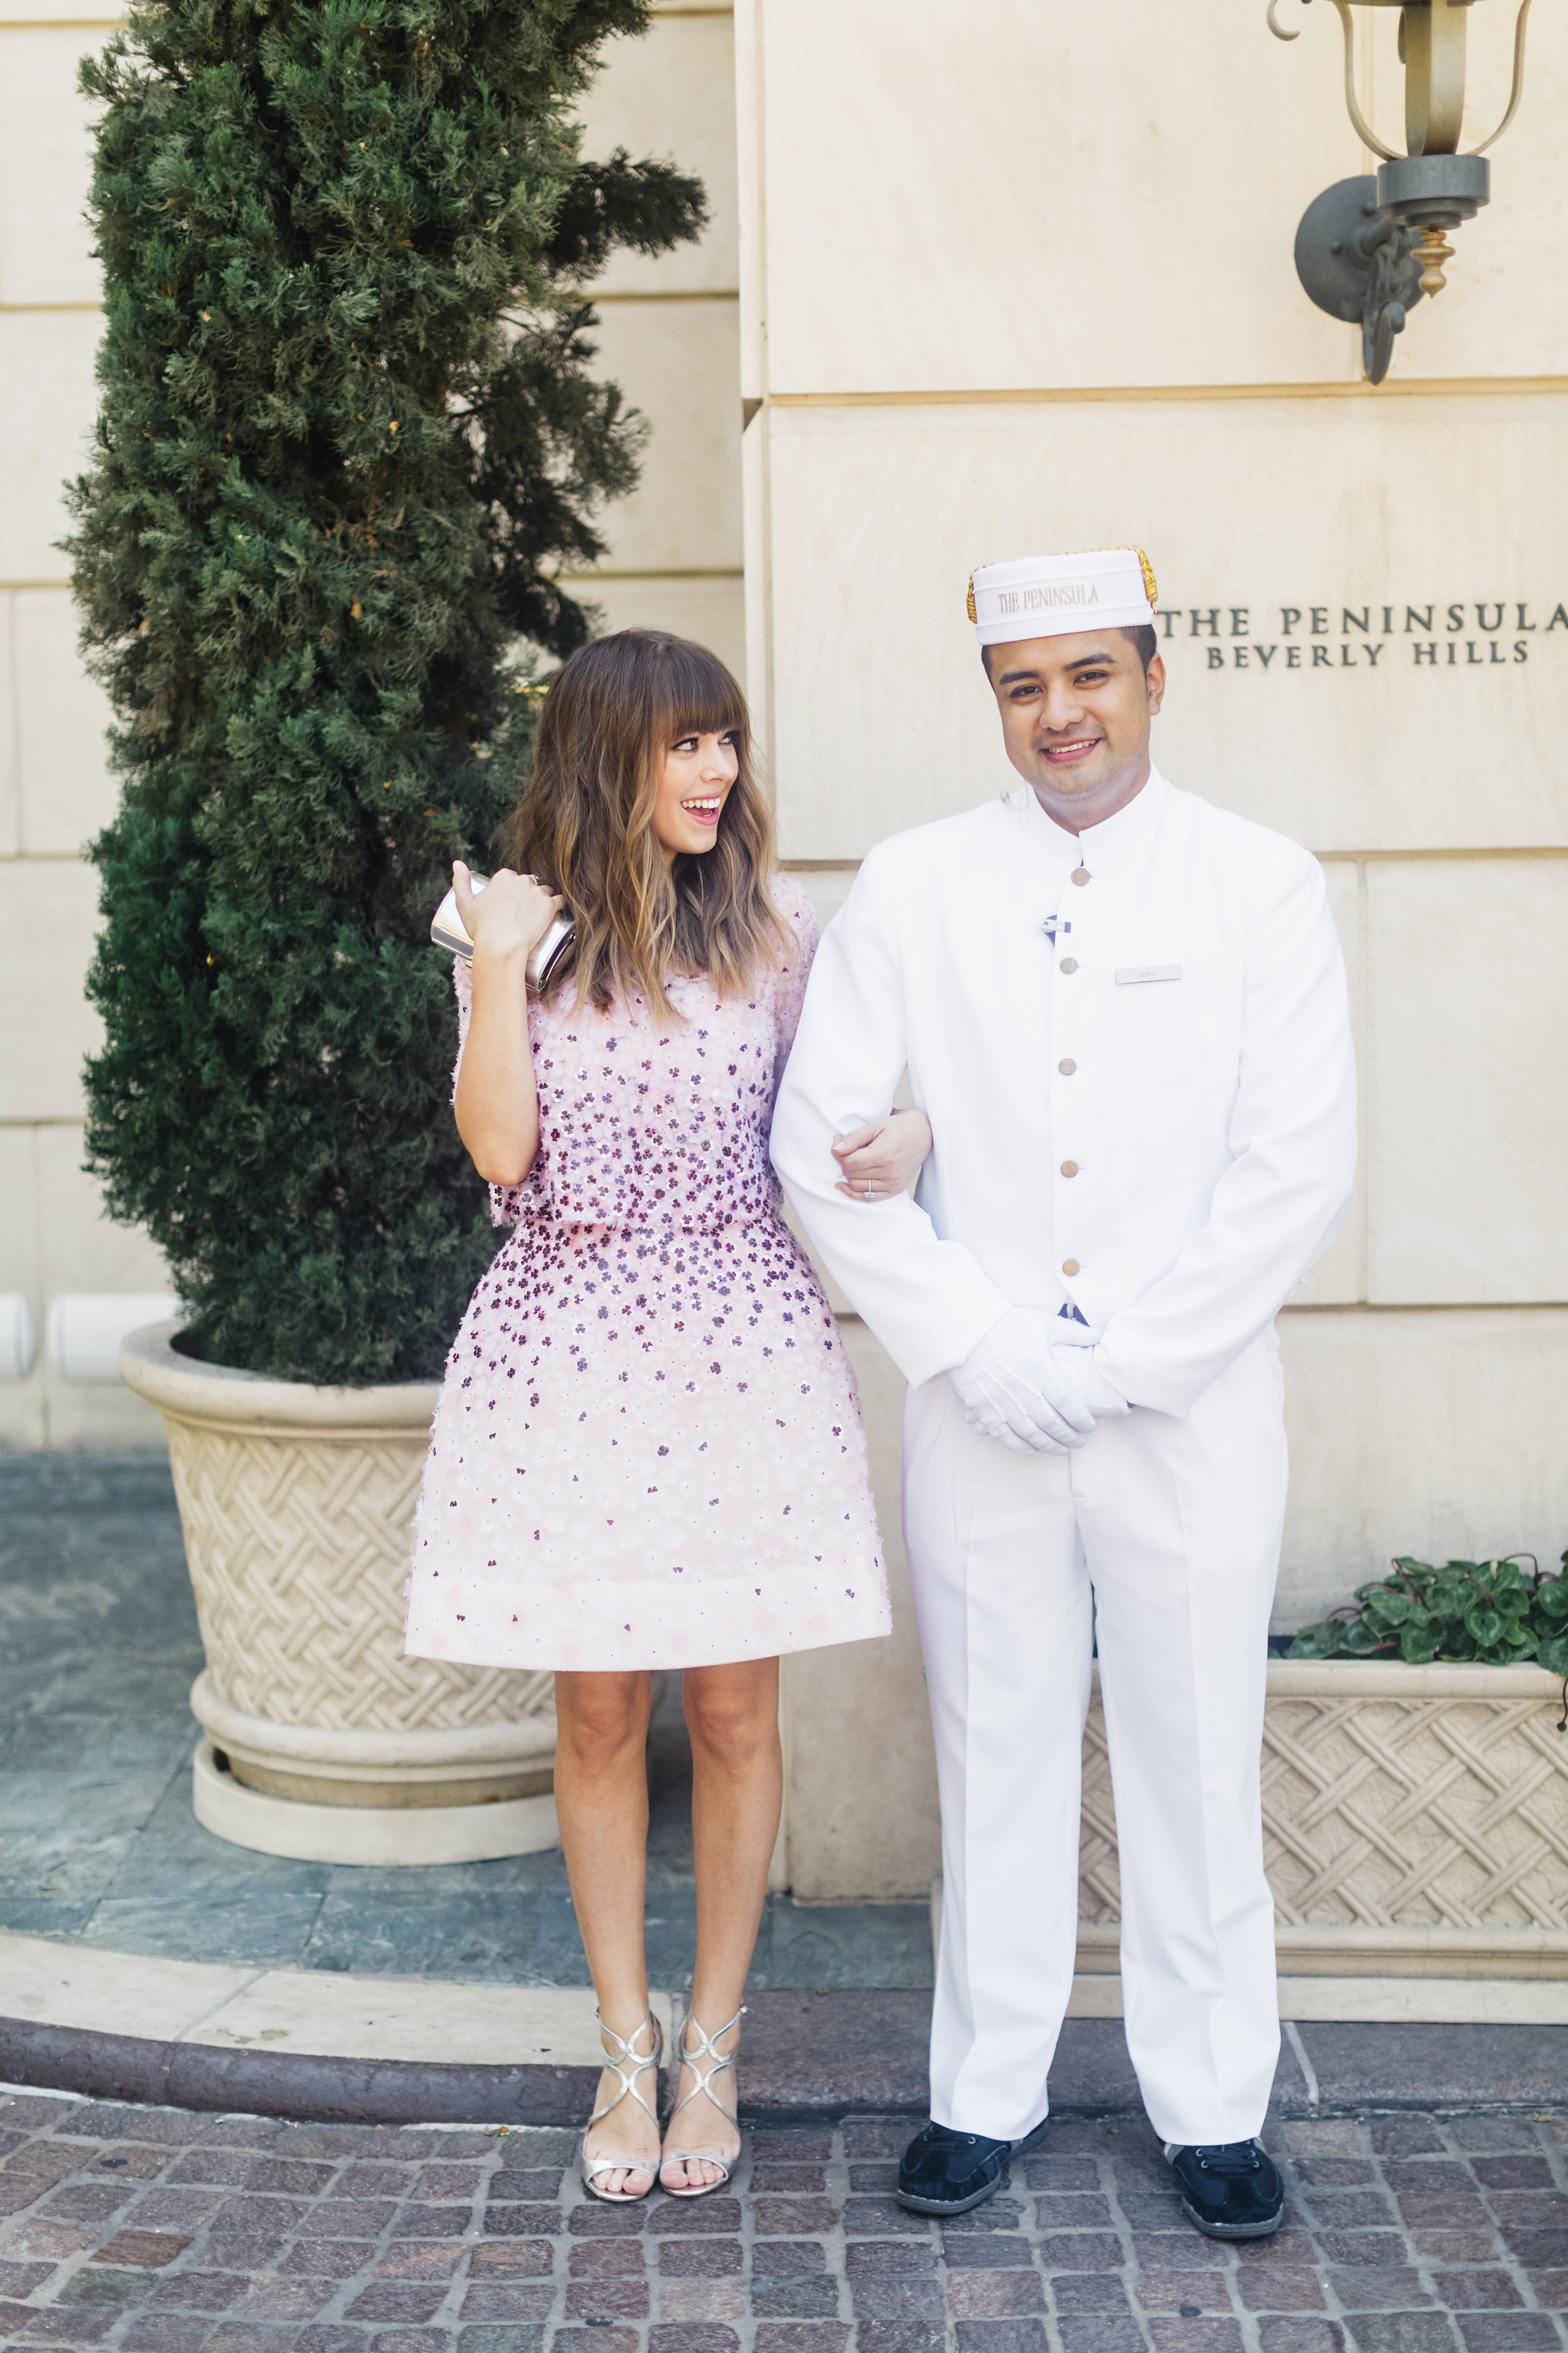 THE PENINSULA, BEVERLY HILLS GRAND BUDAPEST INSPIRED BRIDAL SHOWER